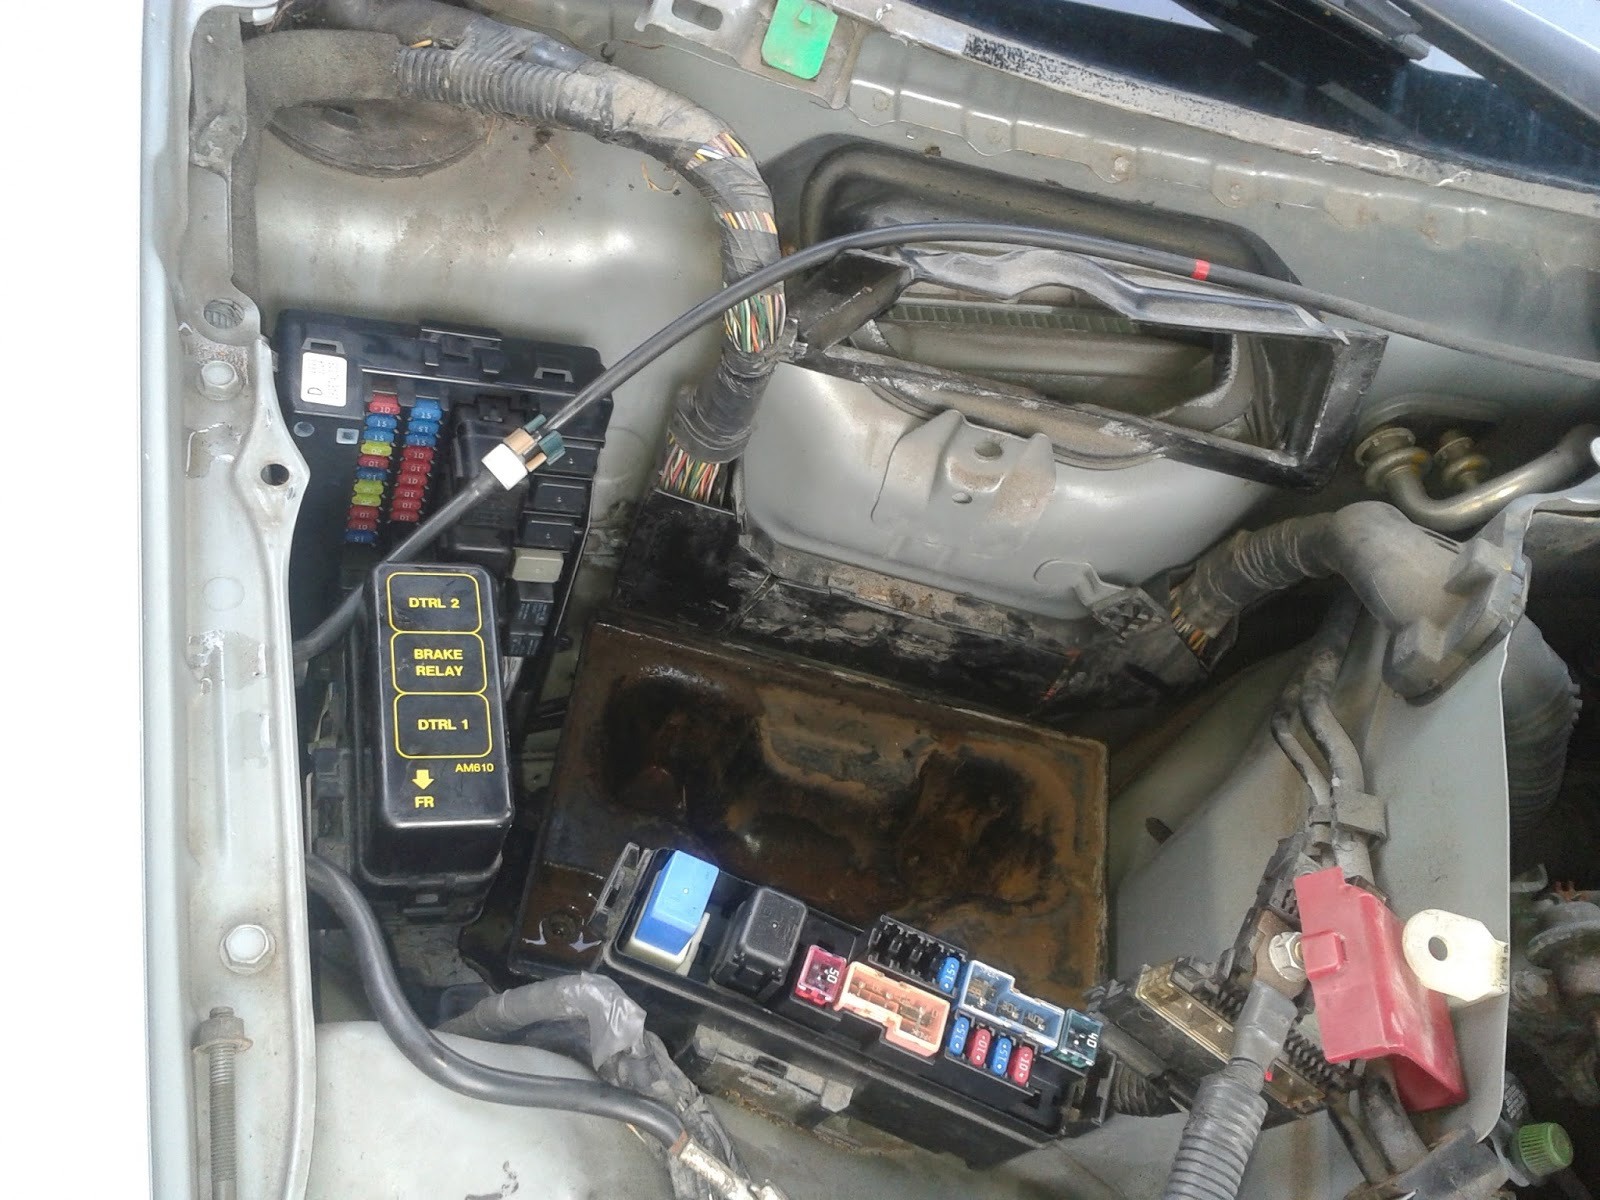 2015 05 27%2B18.55.50 zf inifiniti g35 2003 wet ipdm issue, how to fix it 2005 infiniti g35 fuse box location at bakdesigns.co